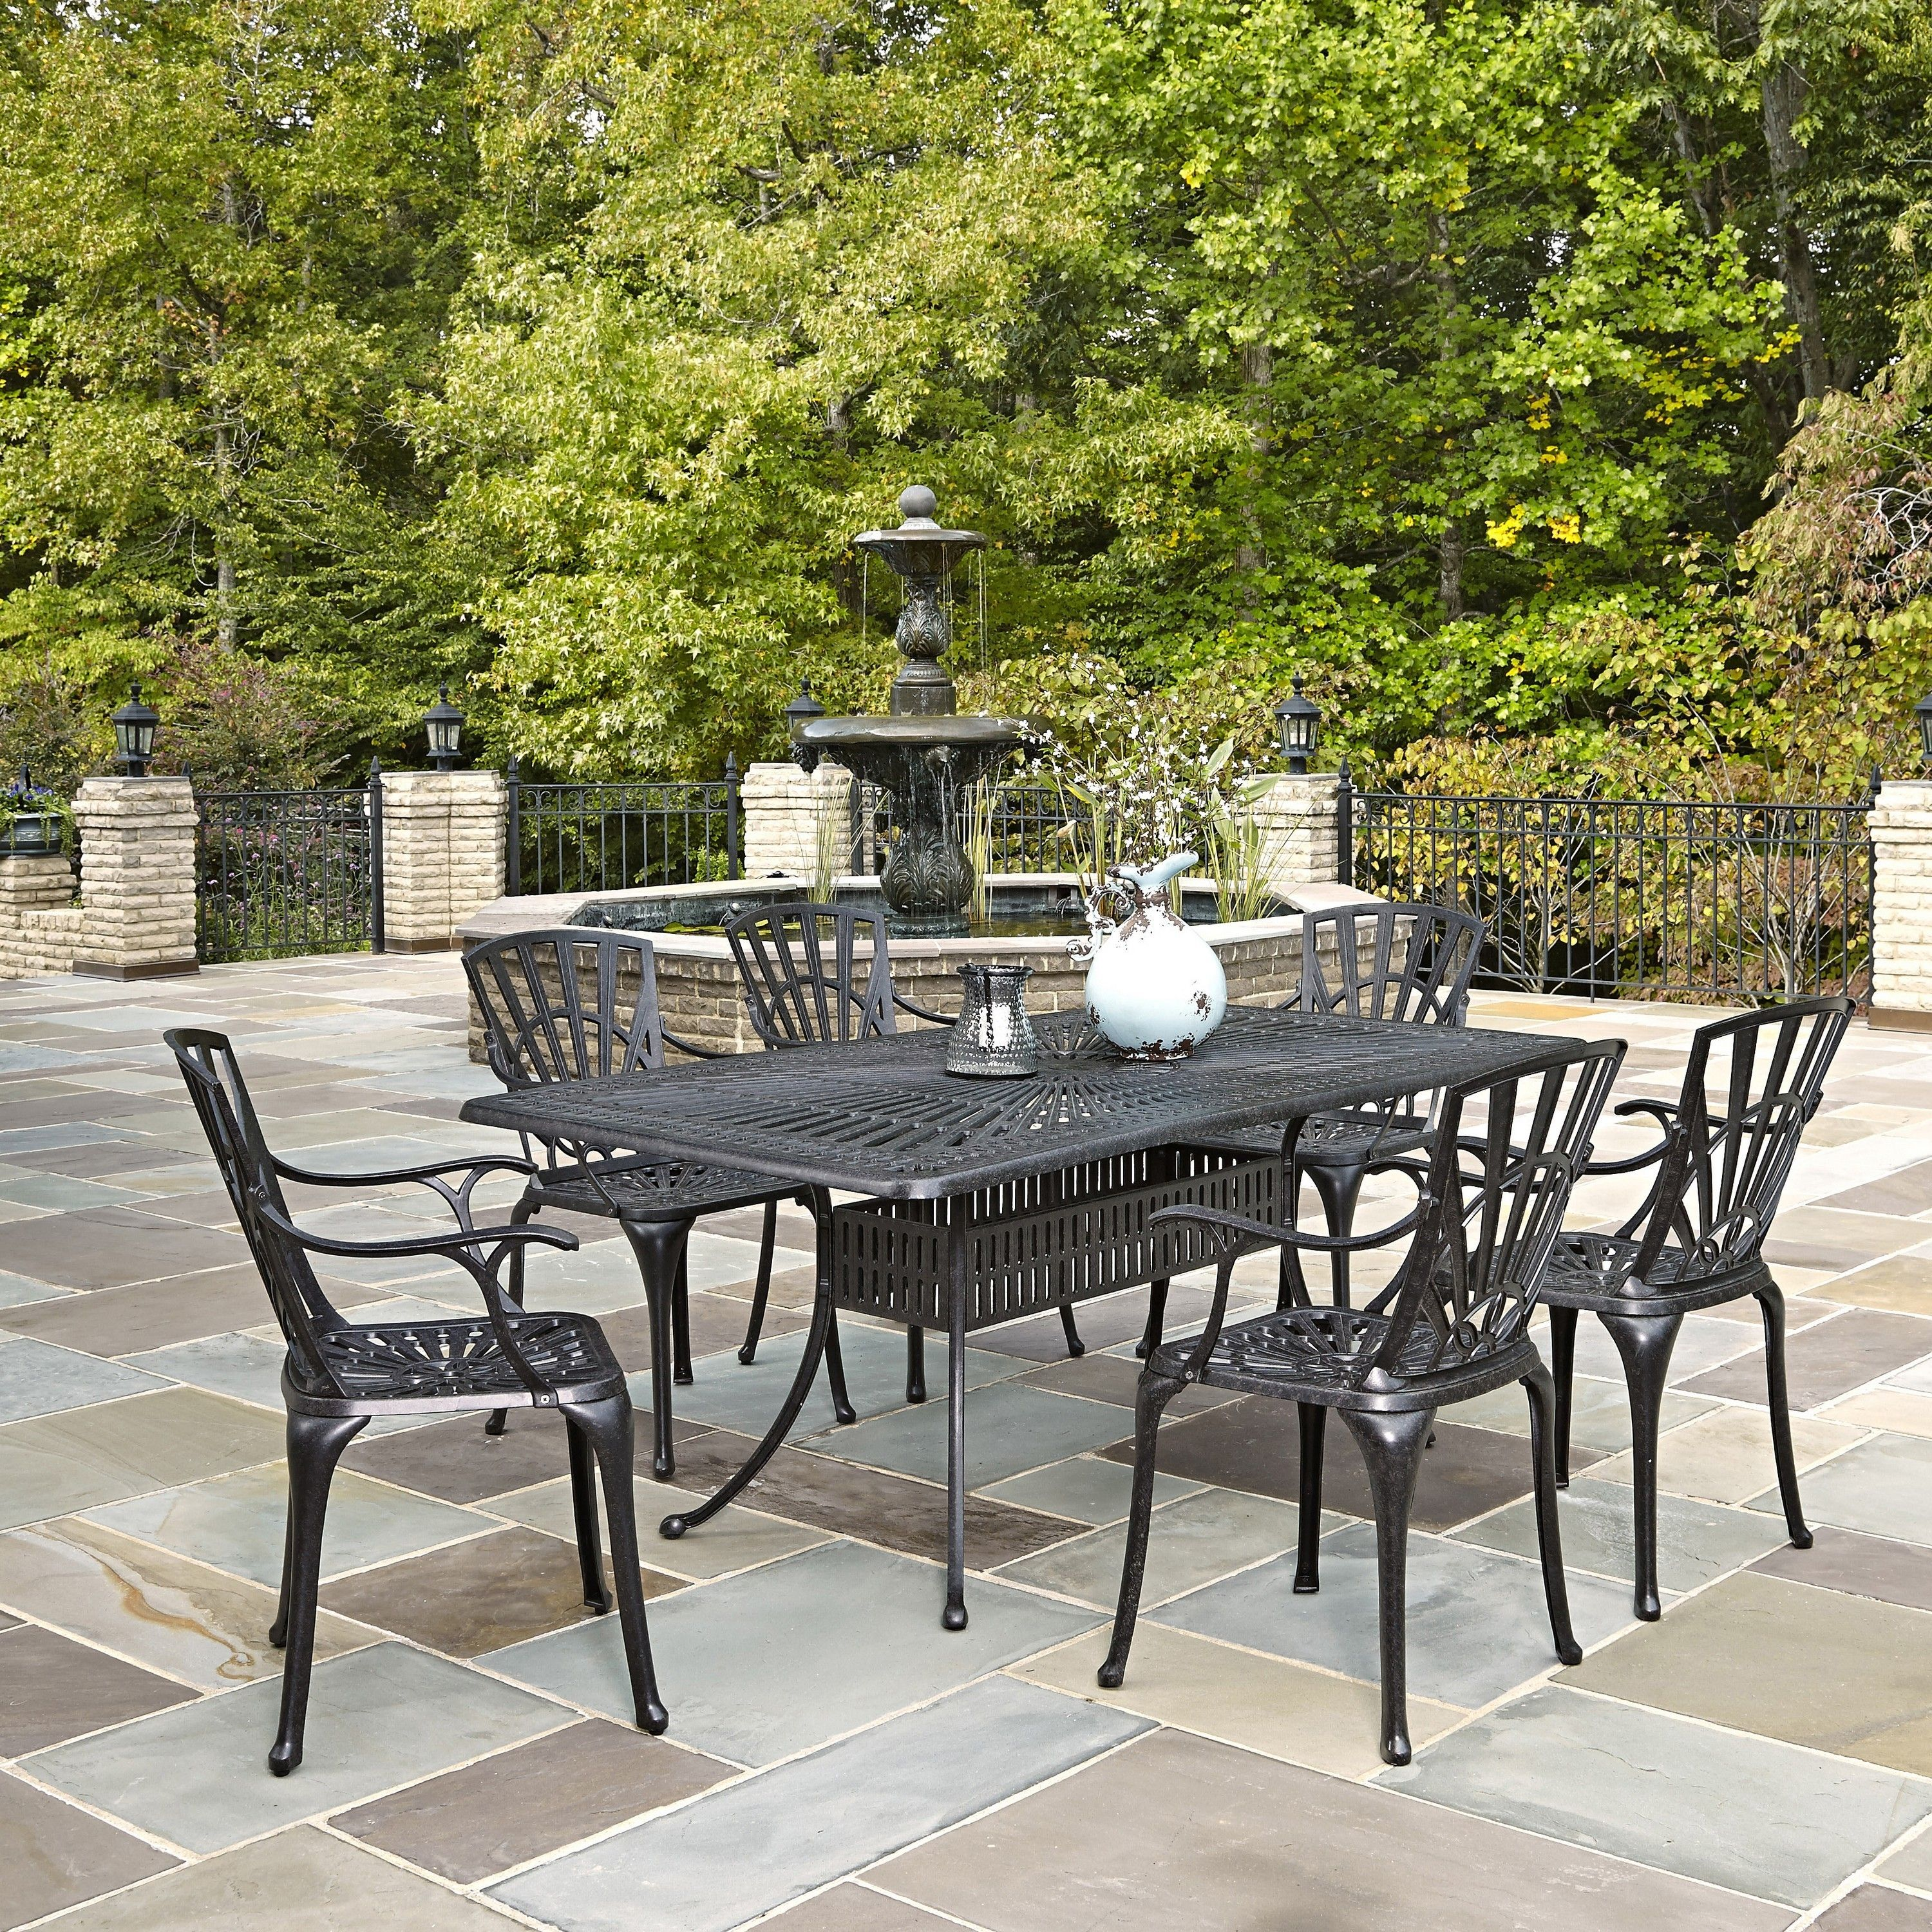 Online Shopping Bedding Furniture Electronics Jewelry Clothing More 7 Piece Dining Set Patio Dining Set Home Styles